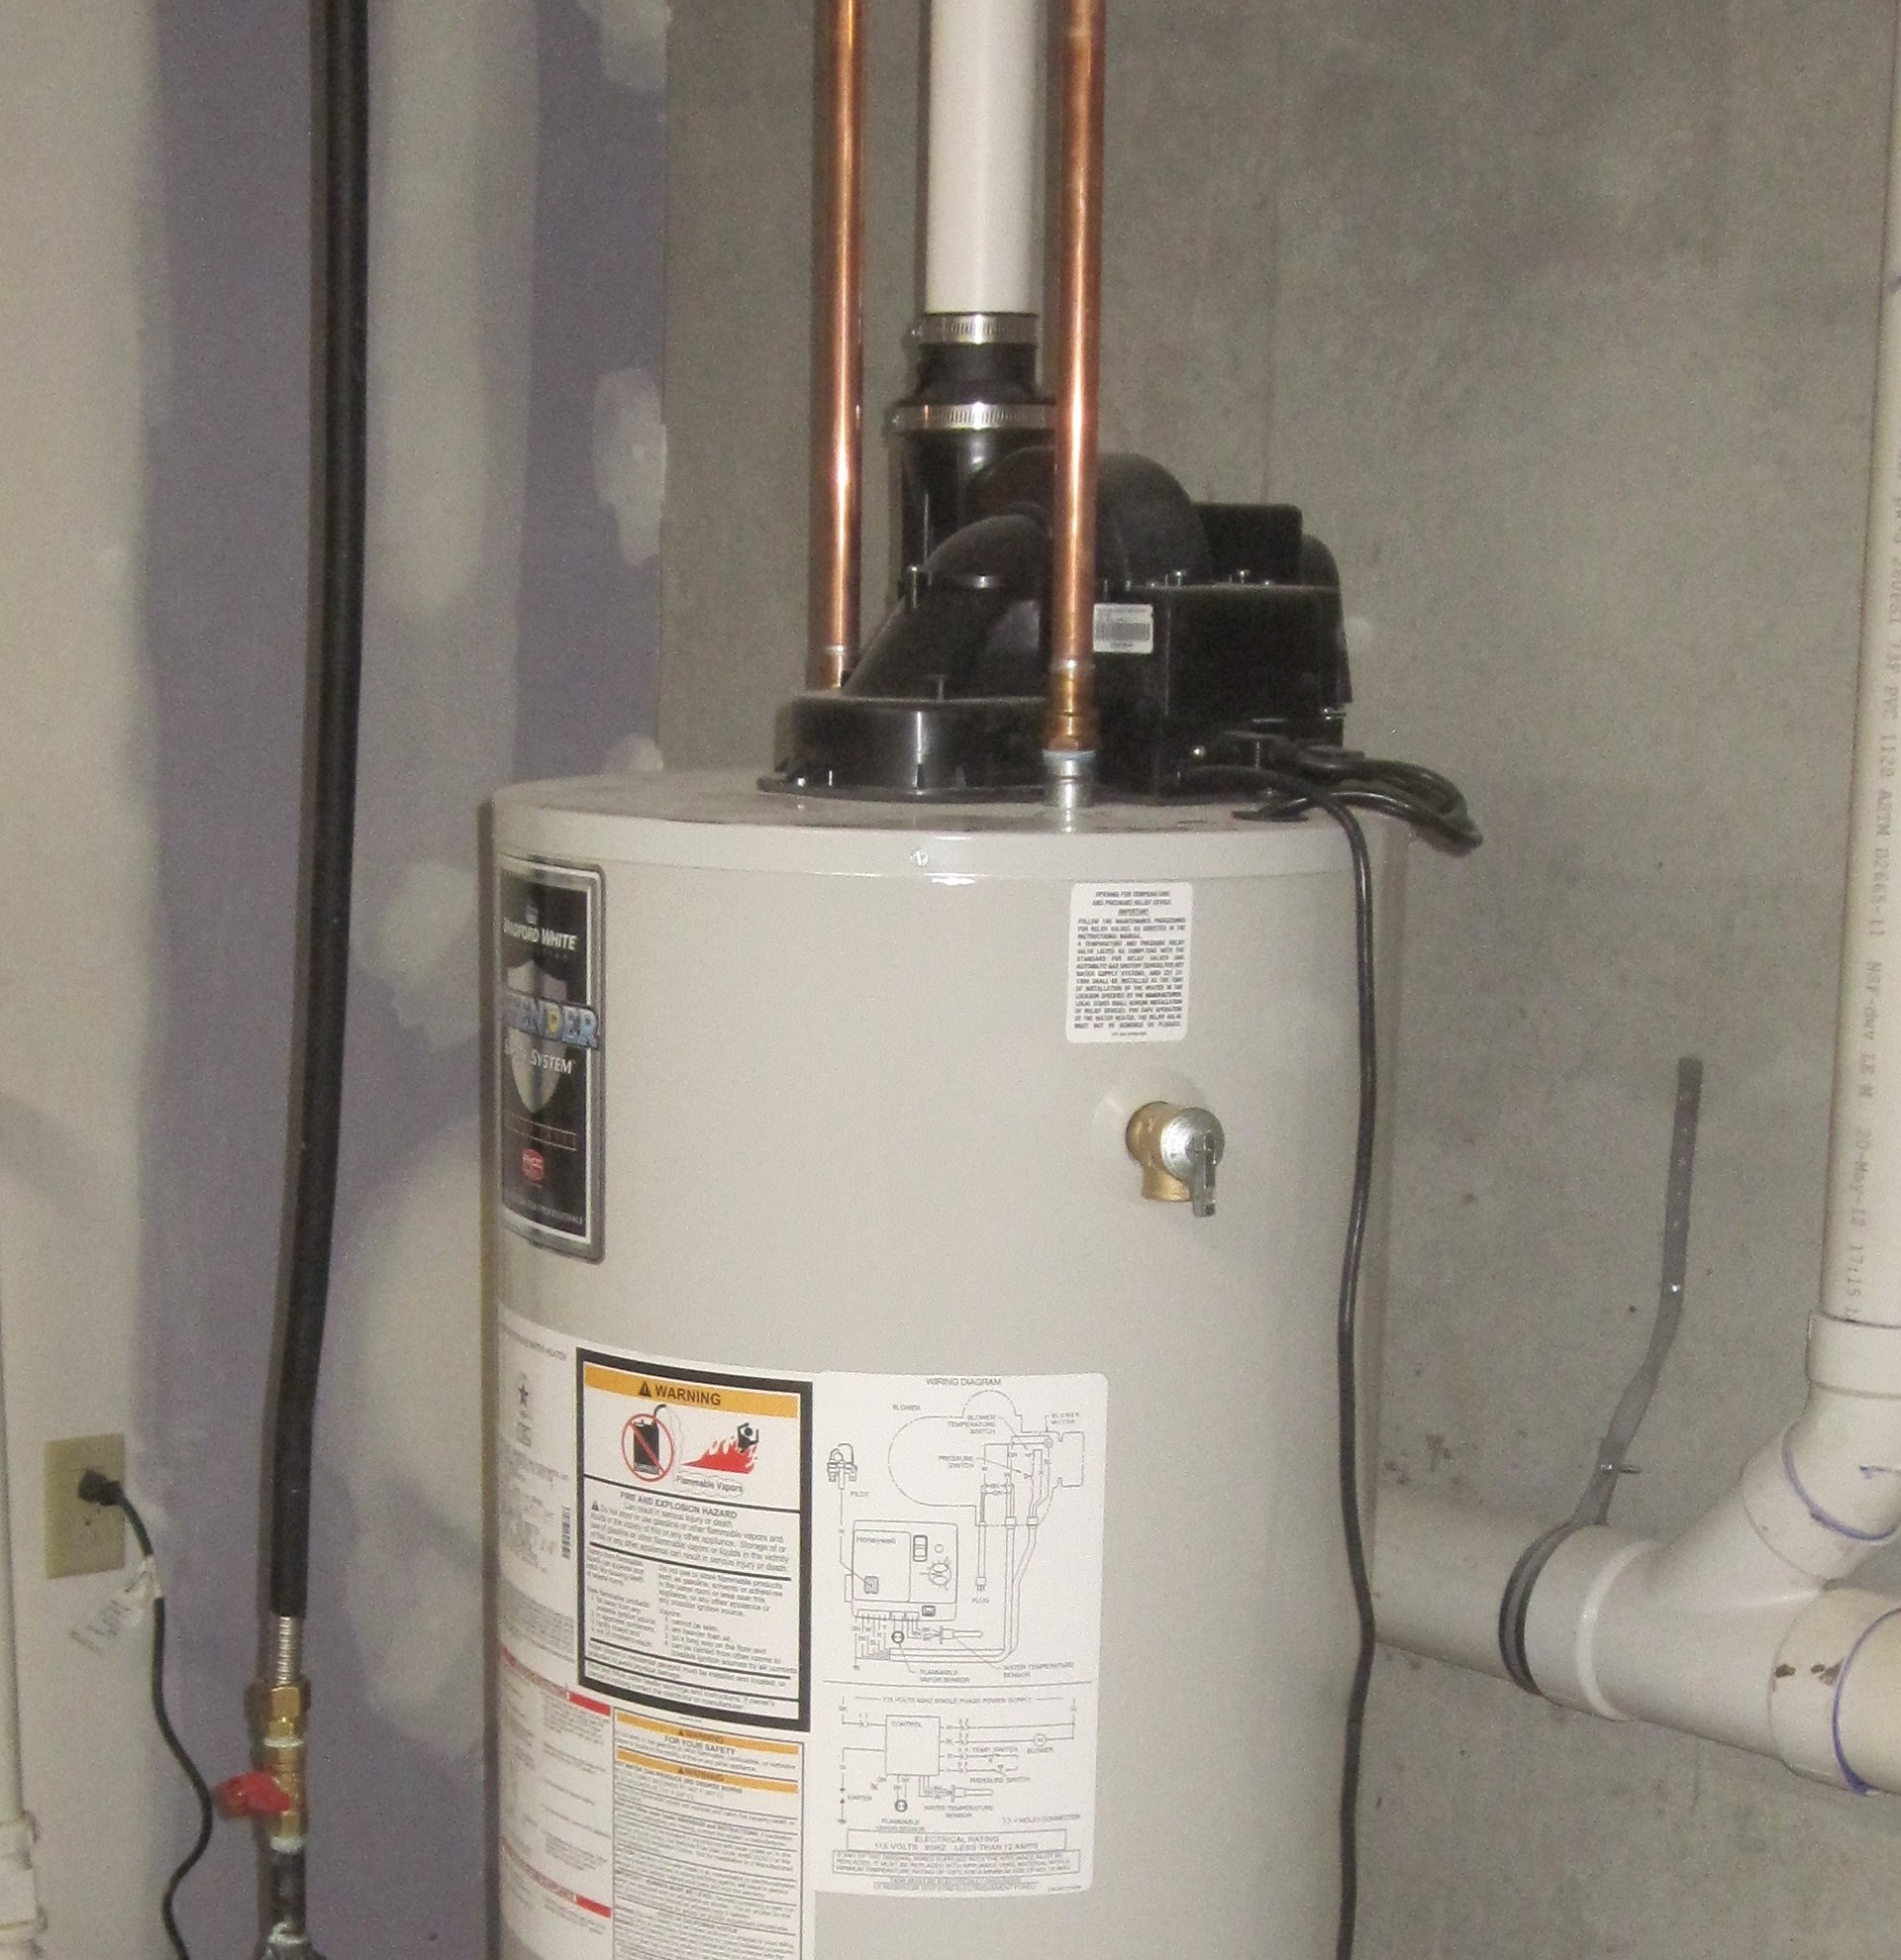 How to vent a hot water heater - Power Vented Water Heater